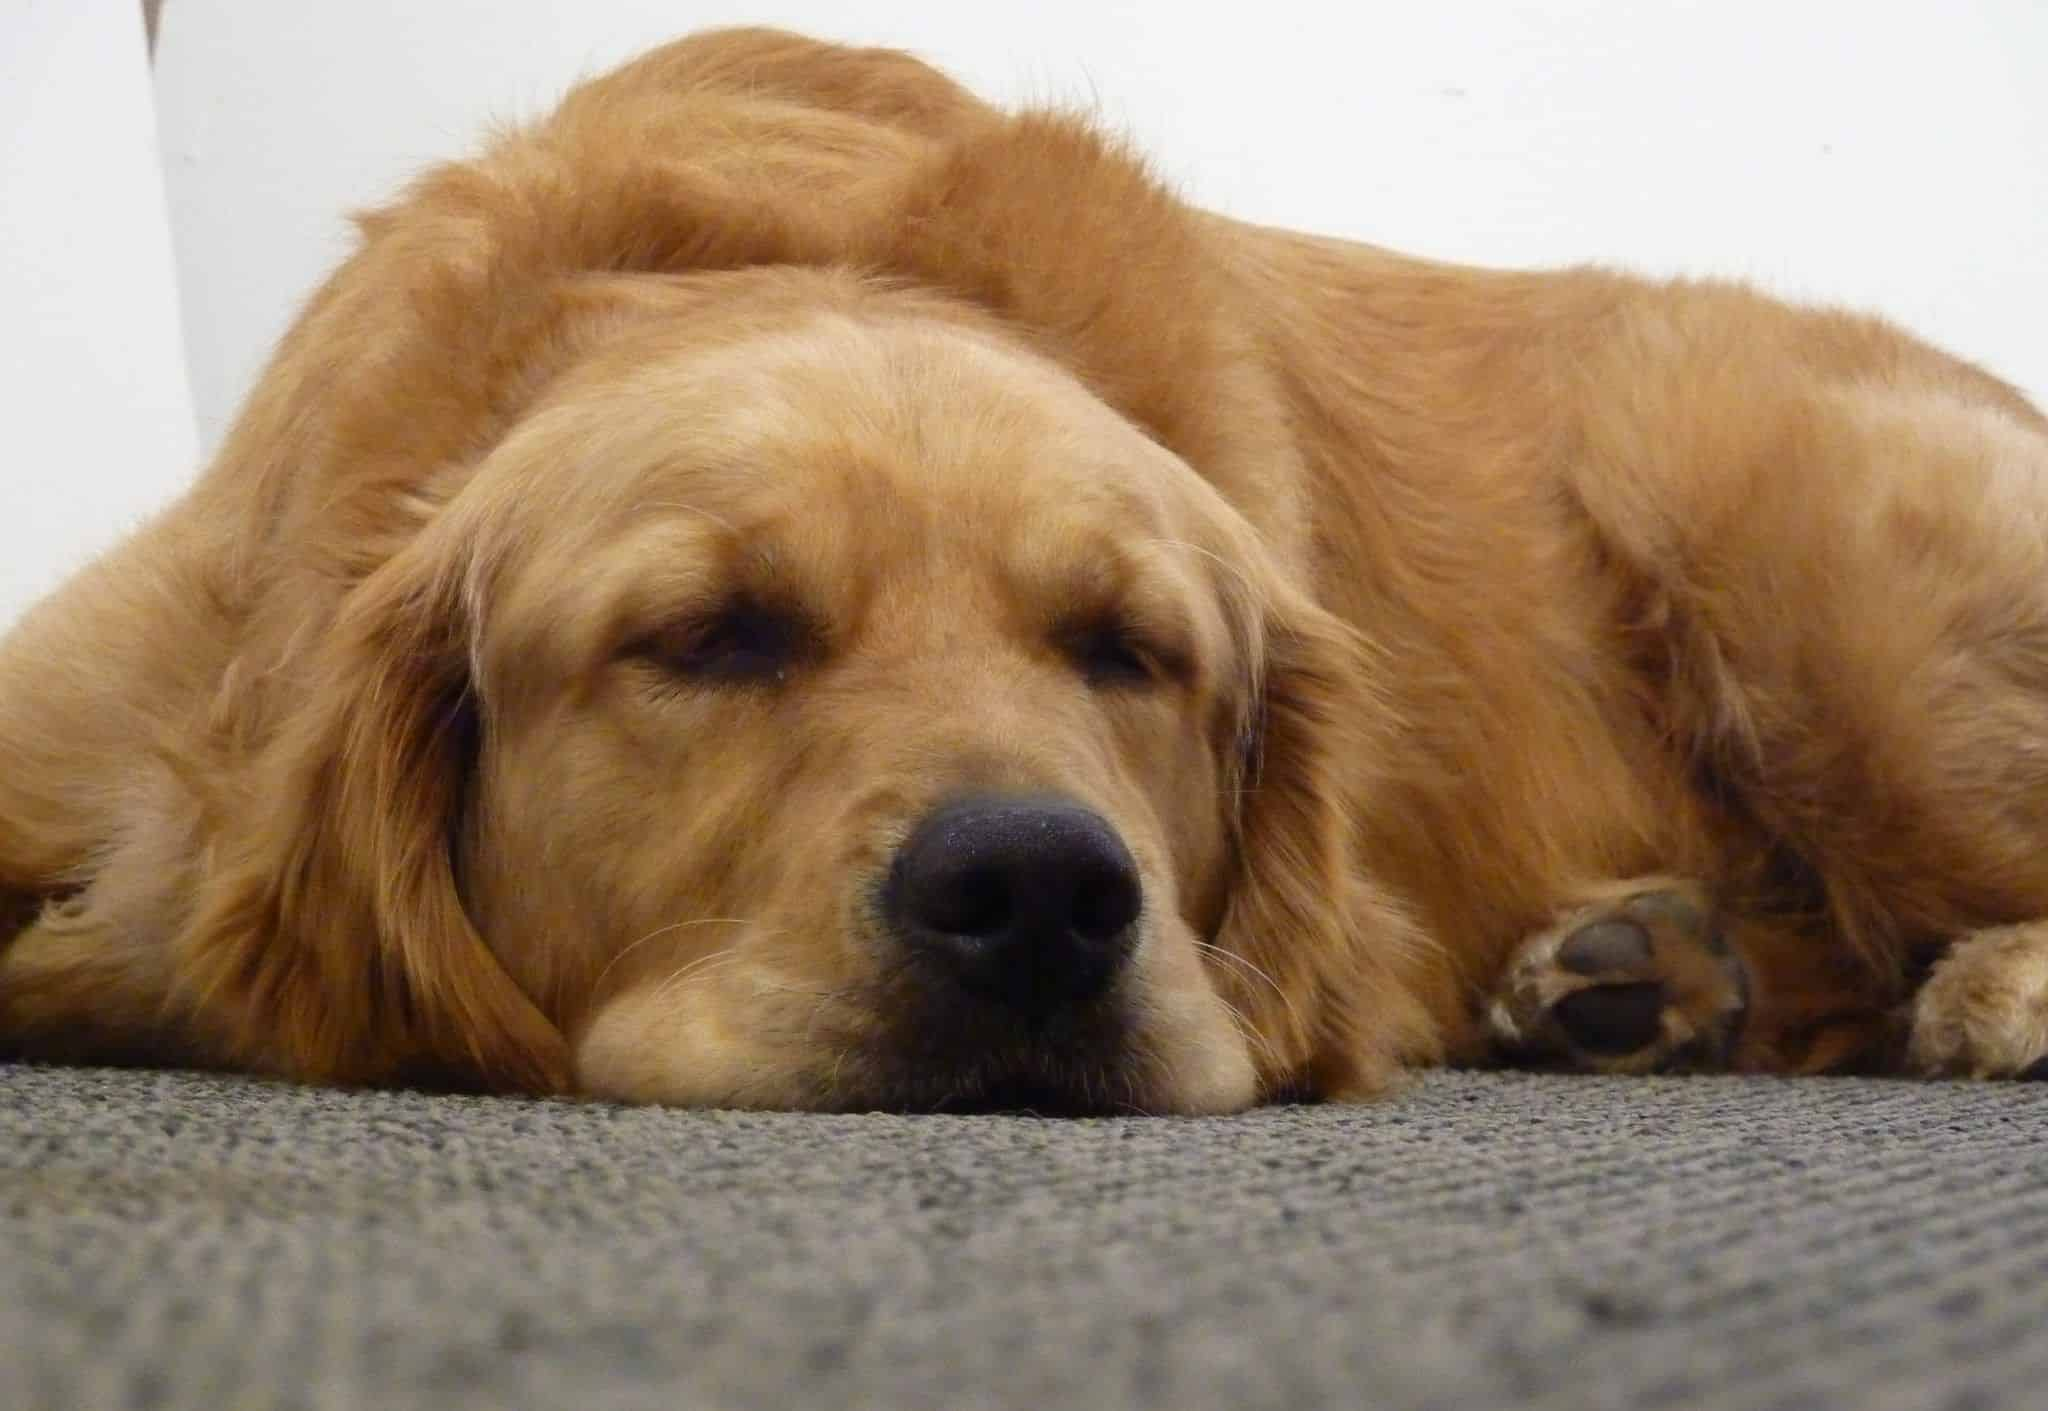 Golden Retriever durmiendo